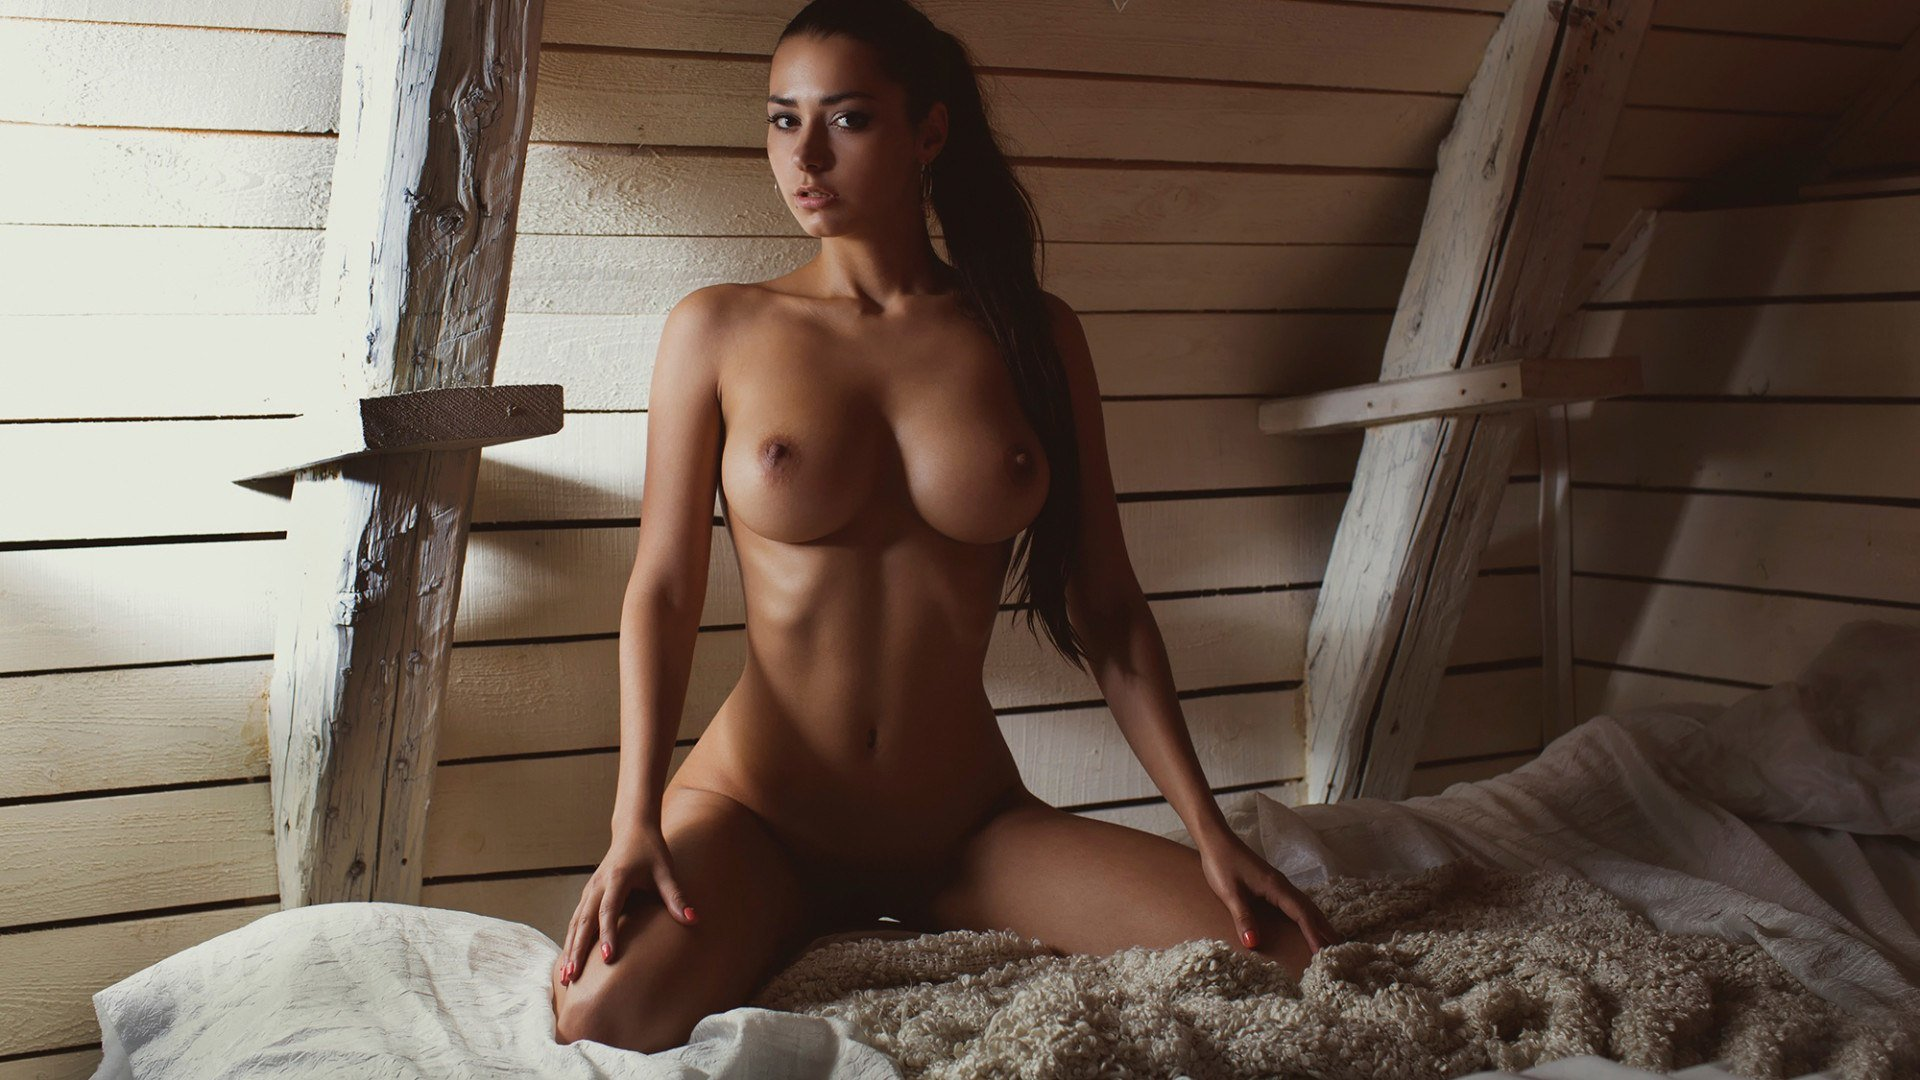 Busty Webcam Girls Will Show You All They Have